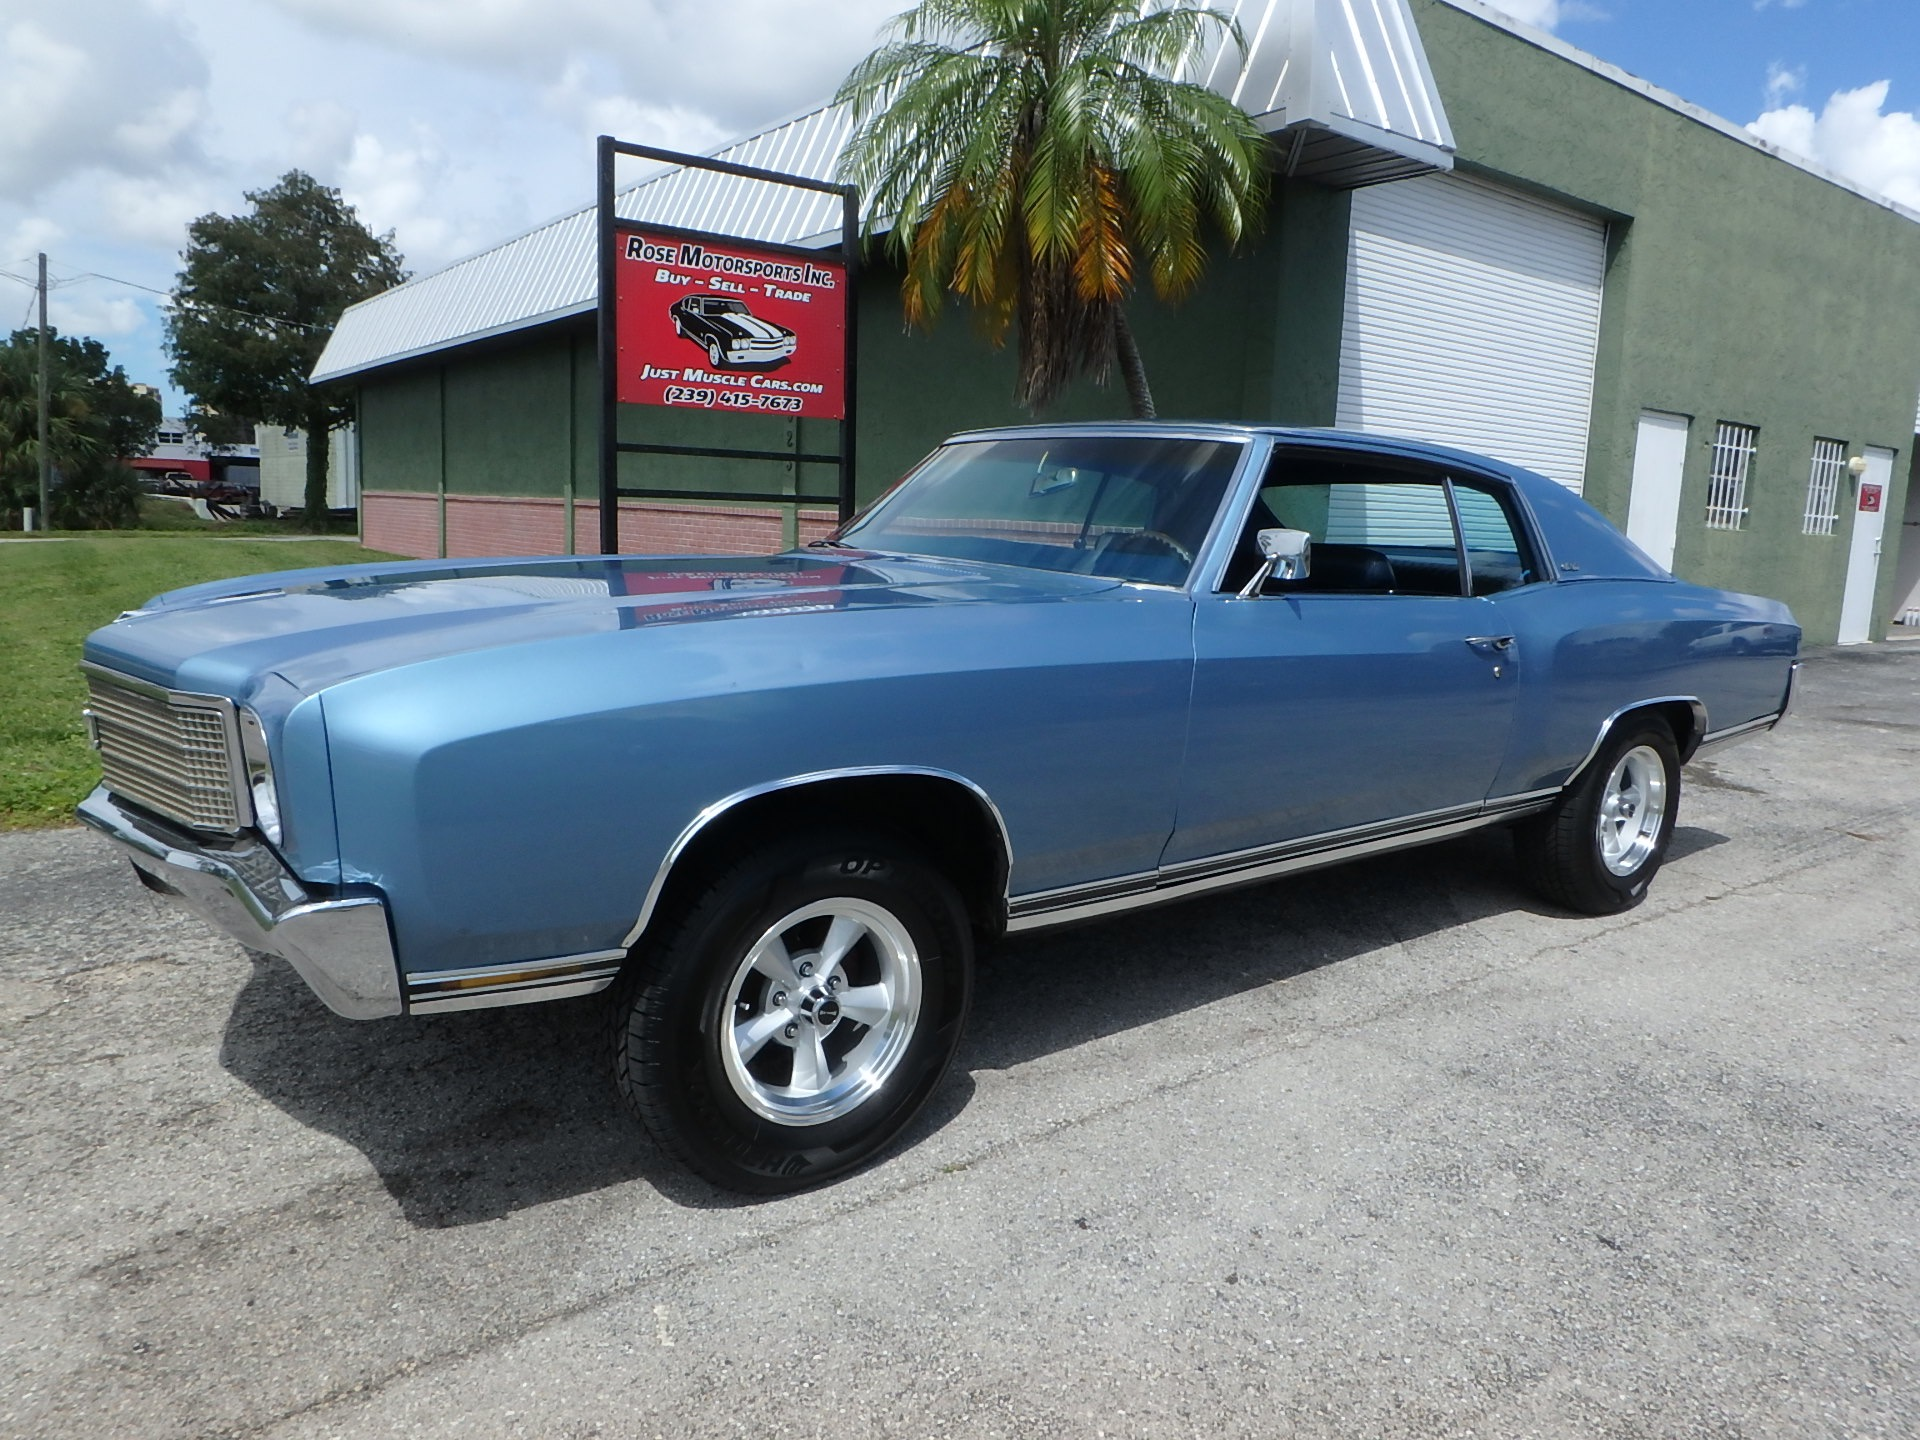 Used 1970 Chevy Monte Carlo